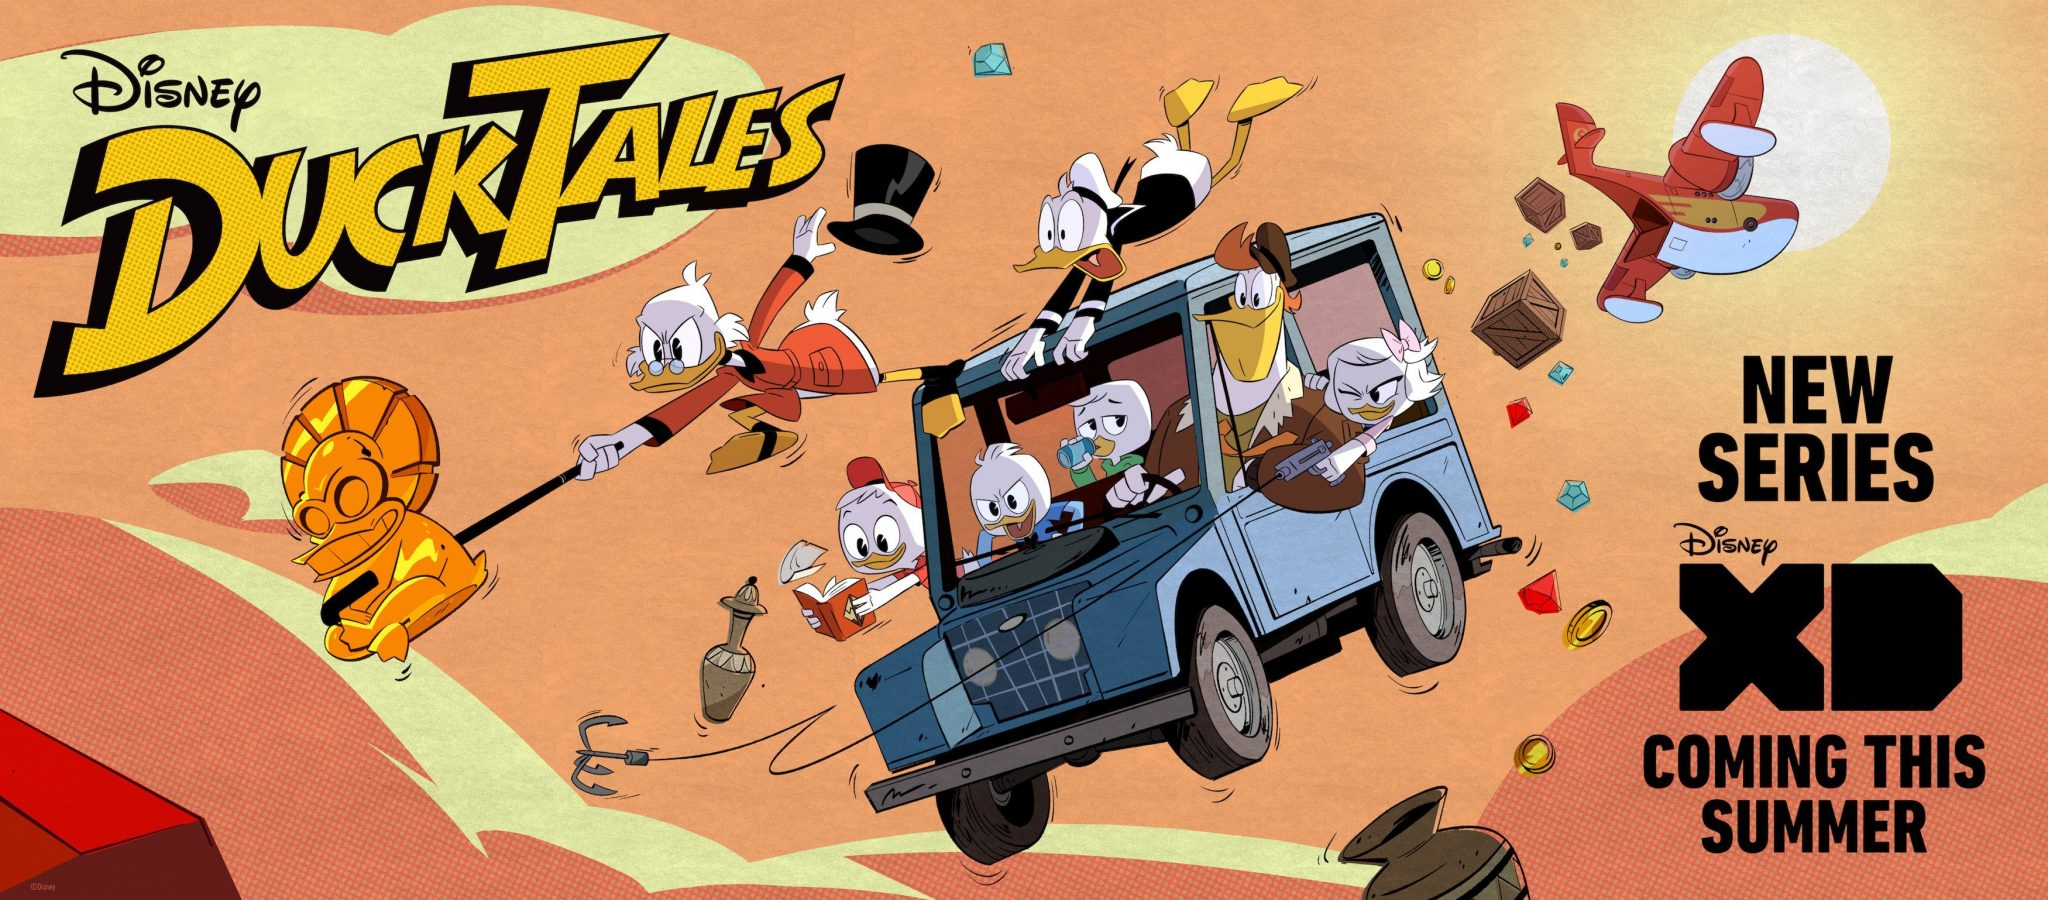 Disney Releases New DuckTales Teaser, Image, and Release Information